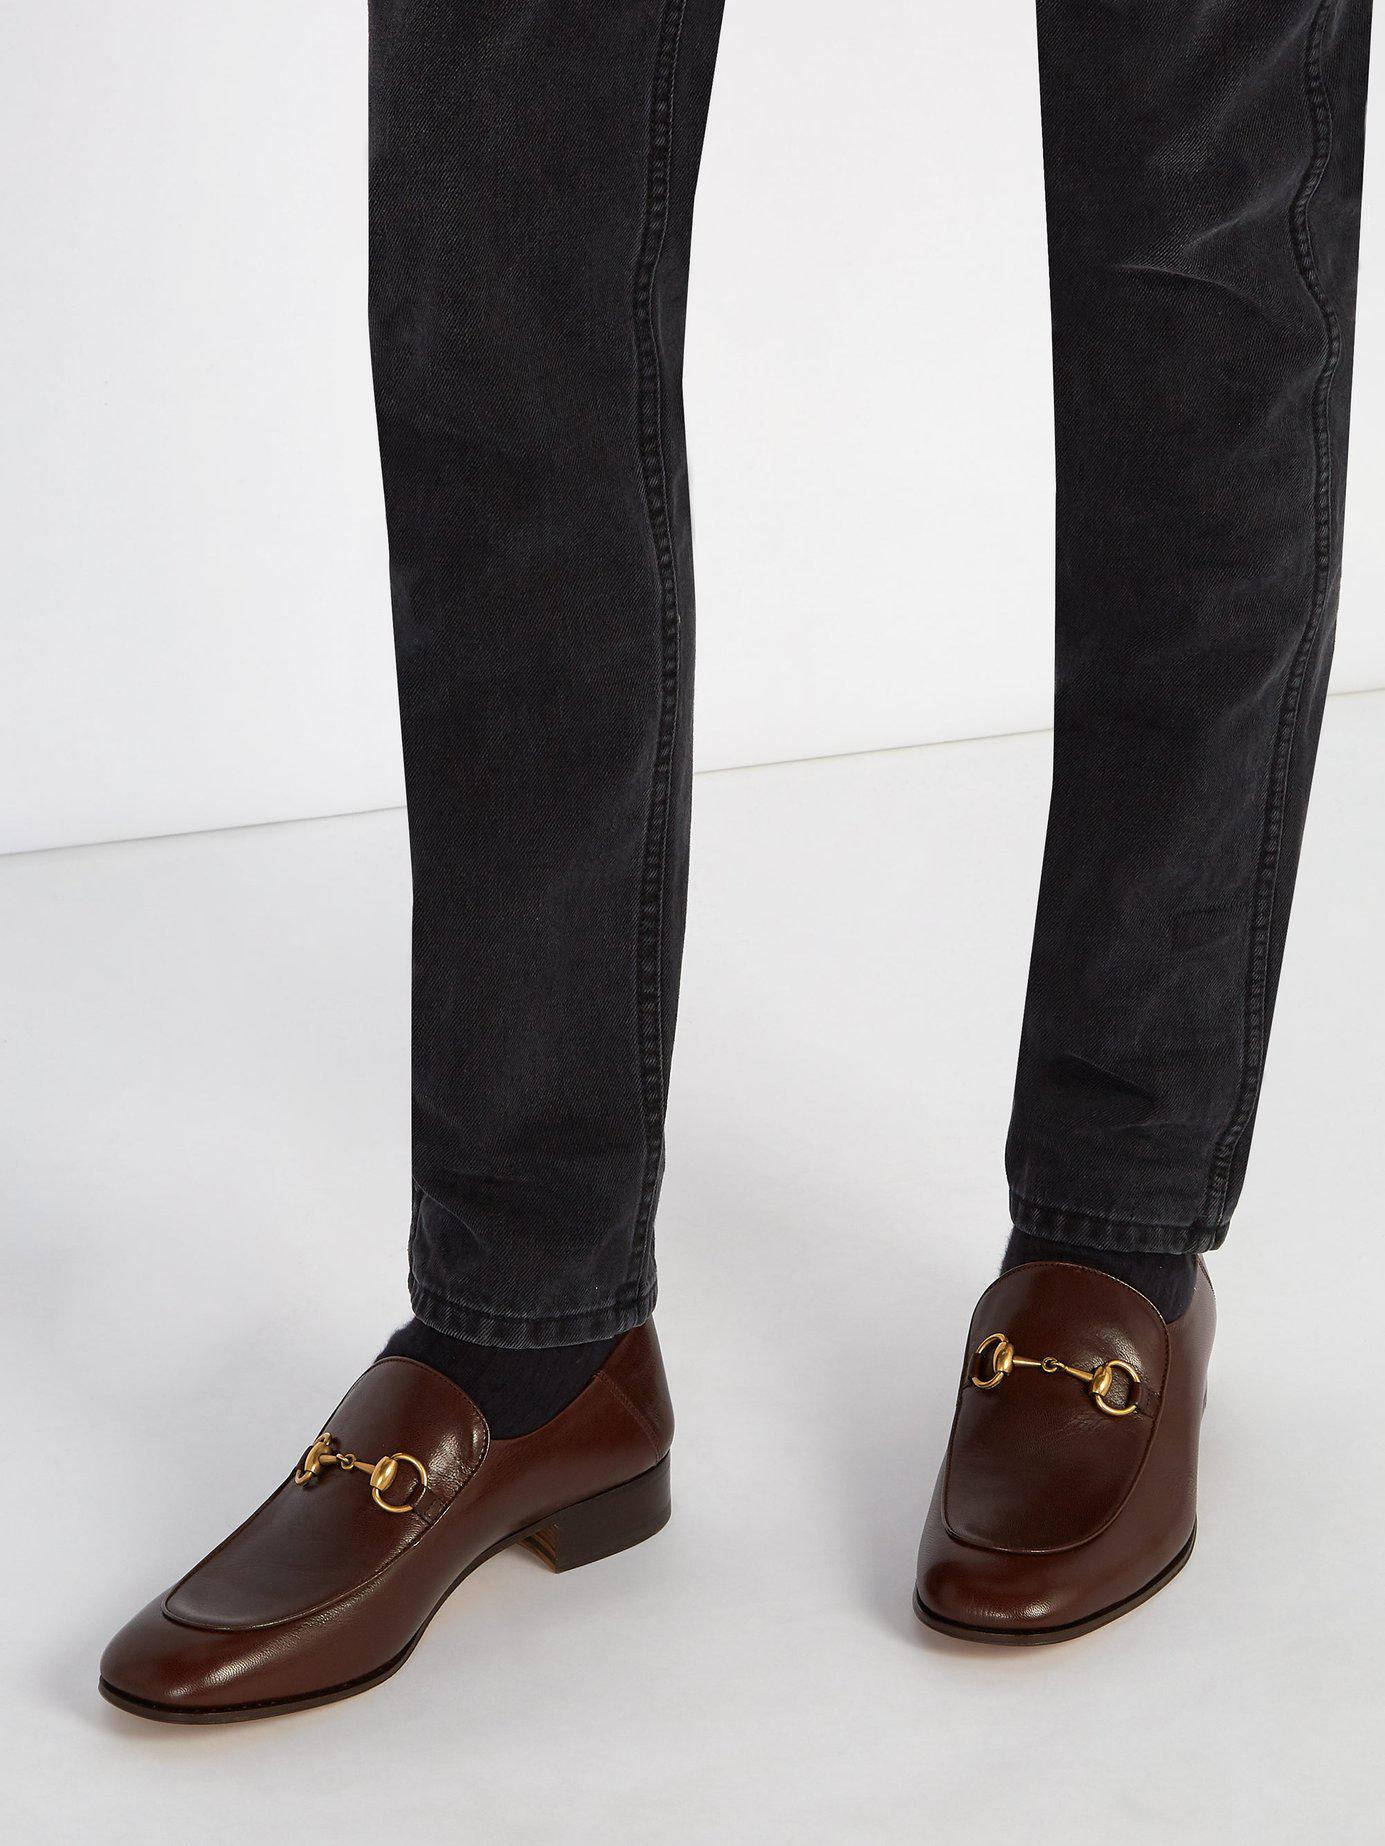 8ceff7bb47a Lyst - Gucci Mister New Leather Loafers in Brown for Men